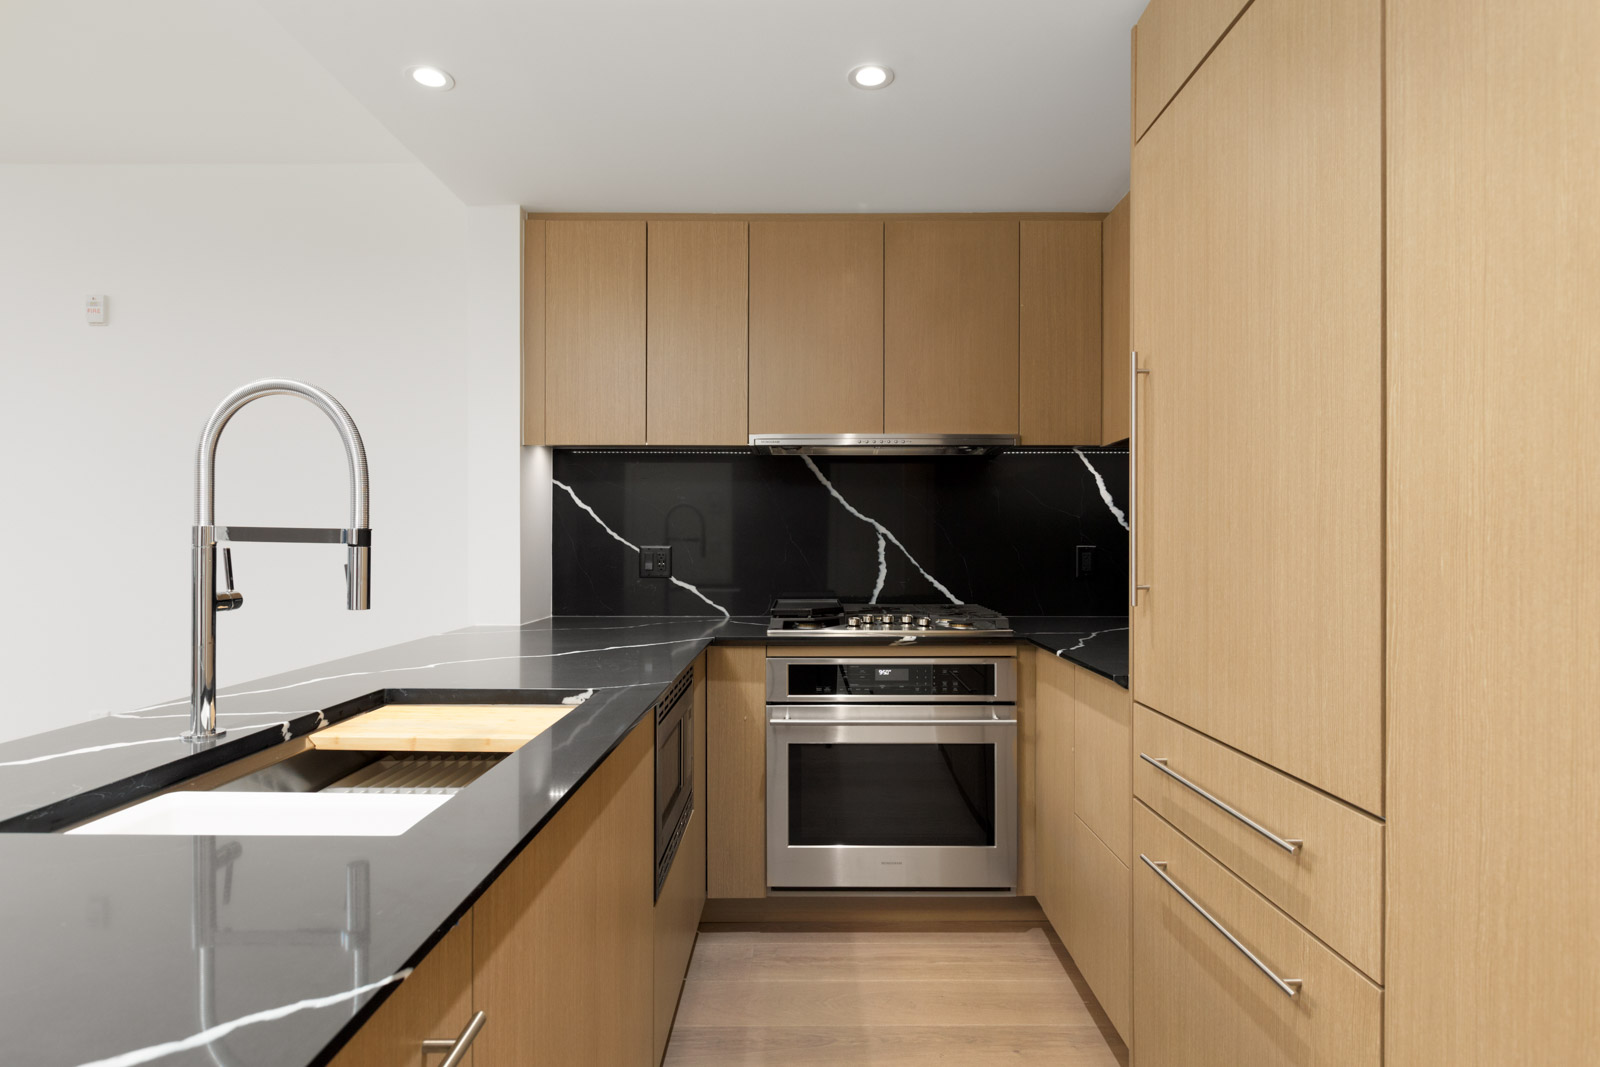 side view of vancouver condo kitchen at shift by aragon with kitchen island with faucet on left and stove top and oven in centre and kitchen cabinets above and on the right